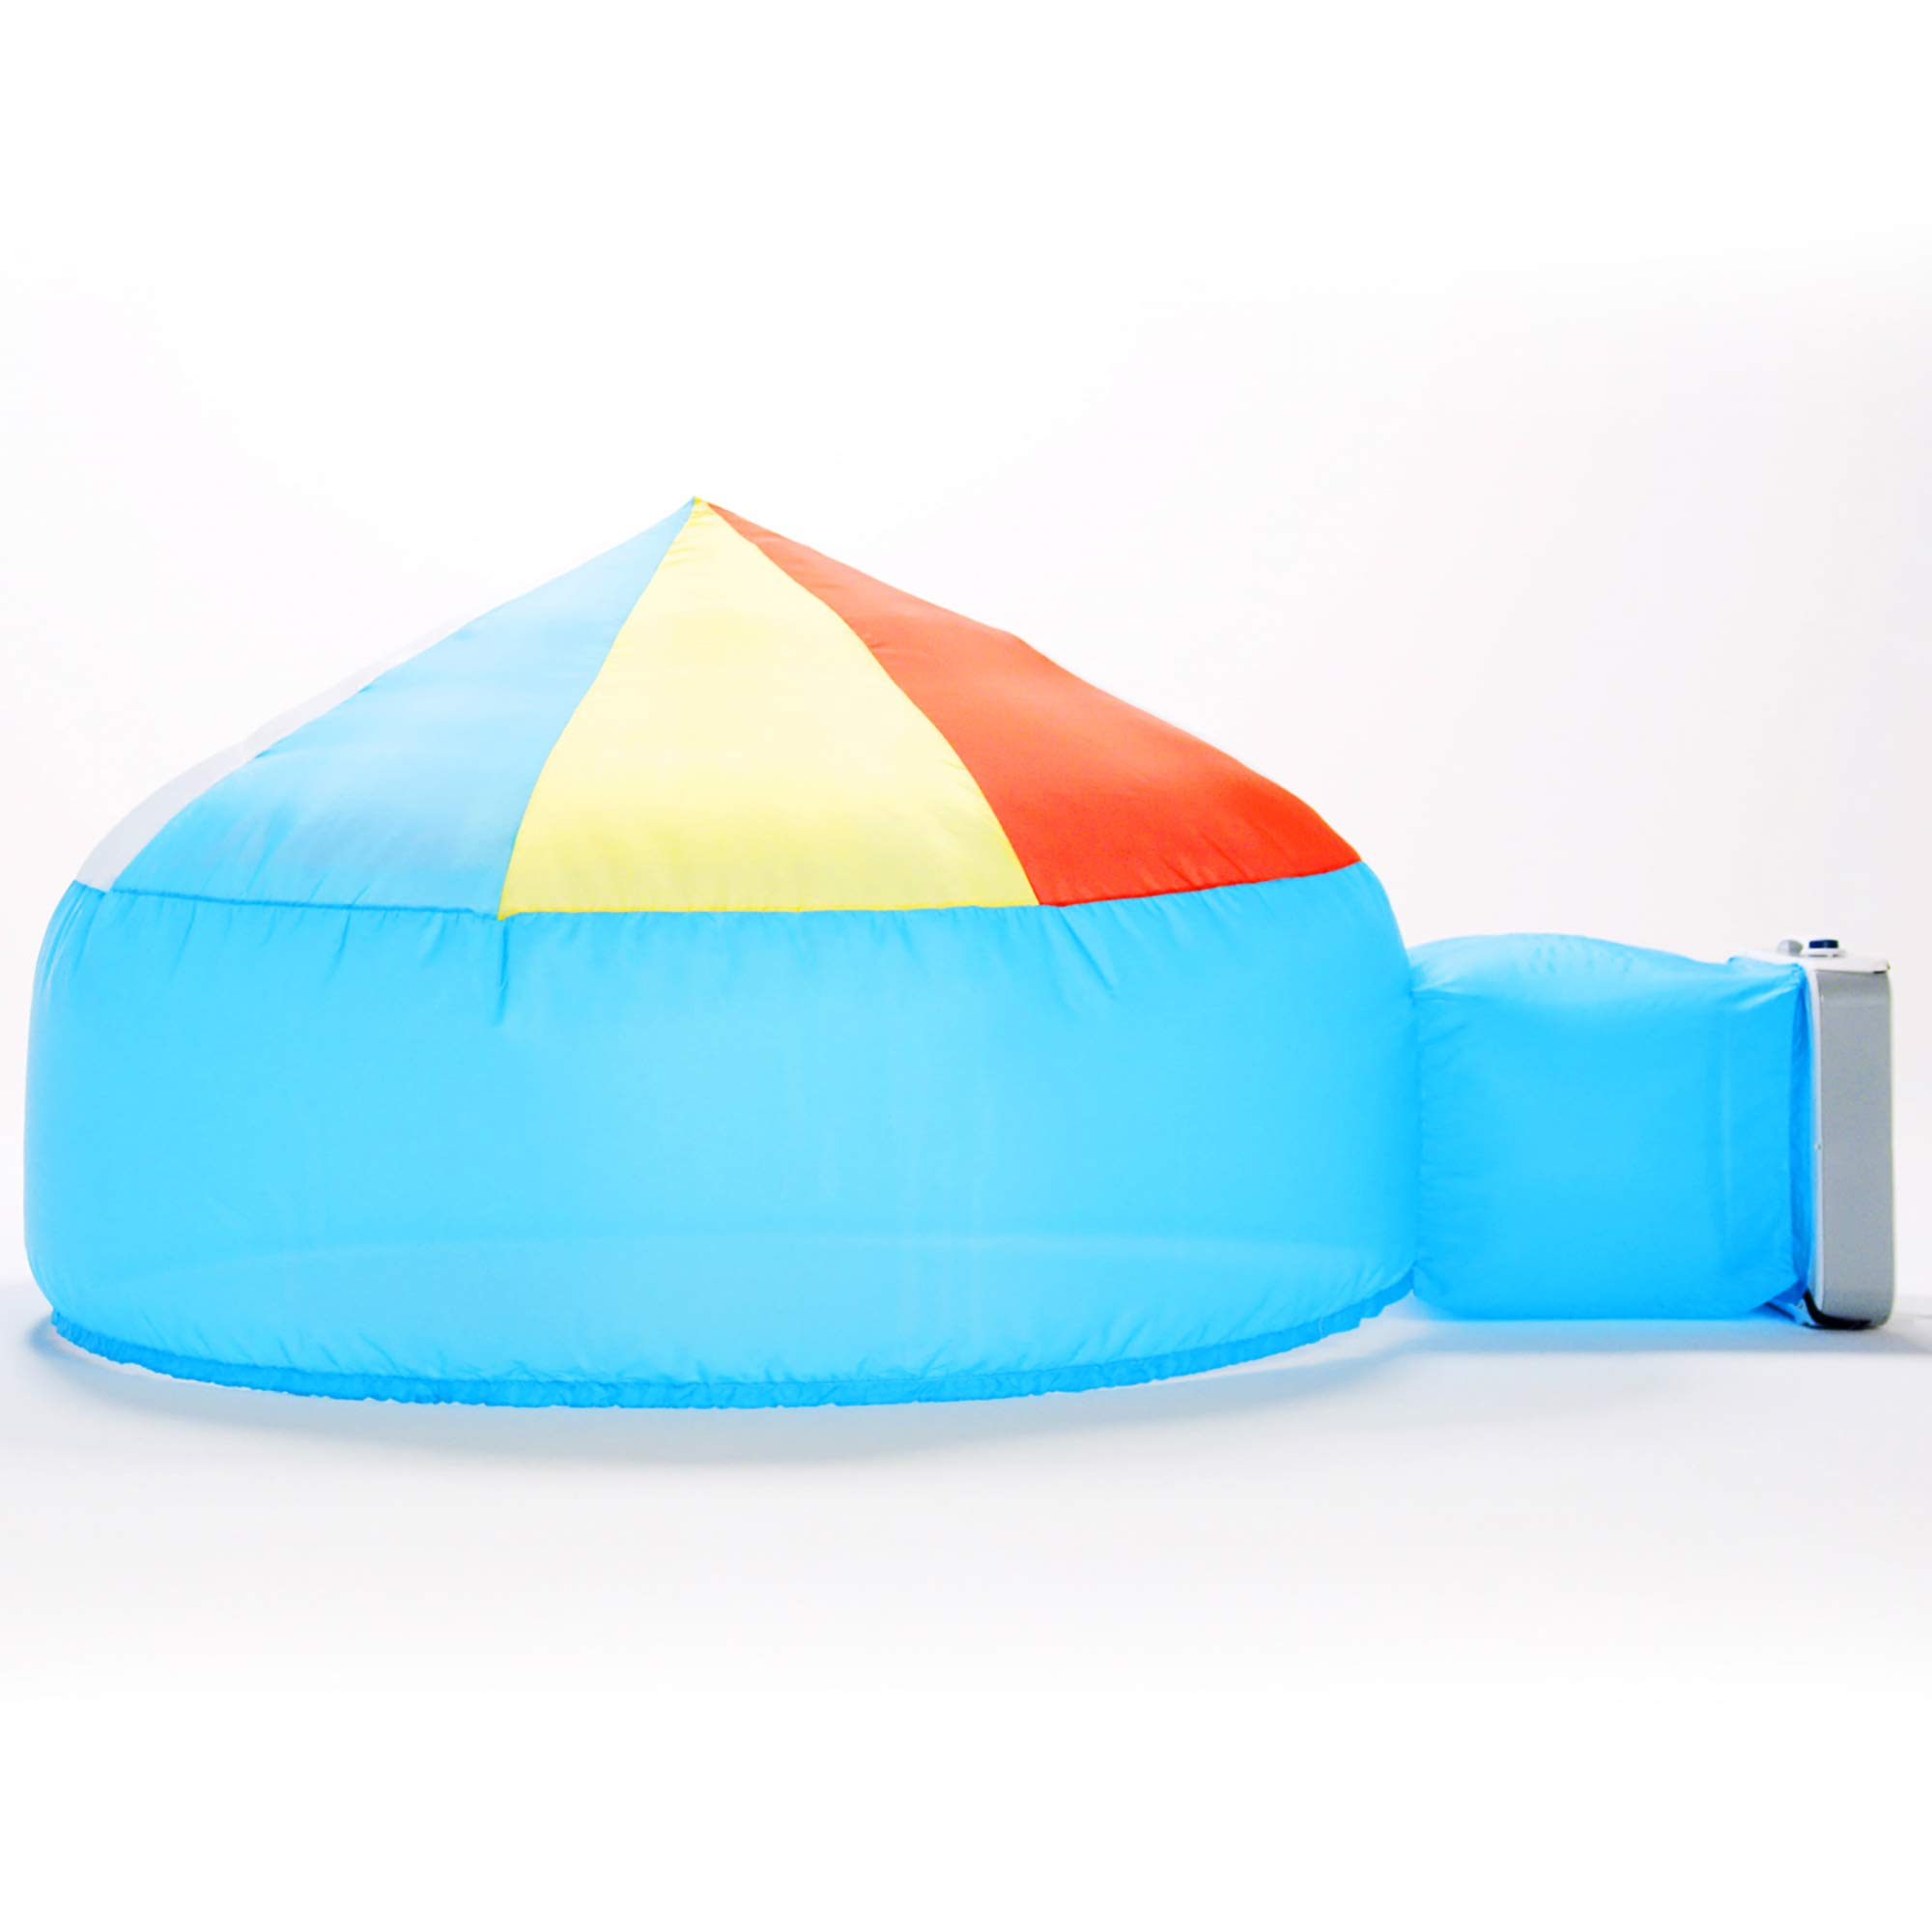 The Original AirFort Build A Fort in 30 Seconds, Inflatable Fort for Kids (Beach Ball Blue)